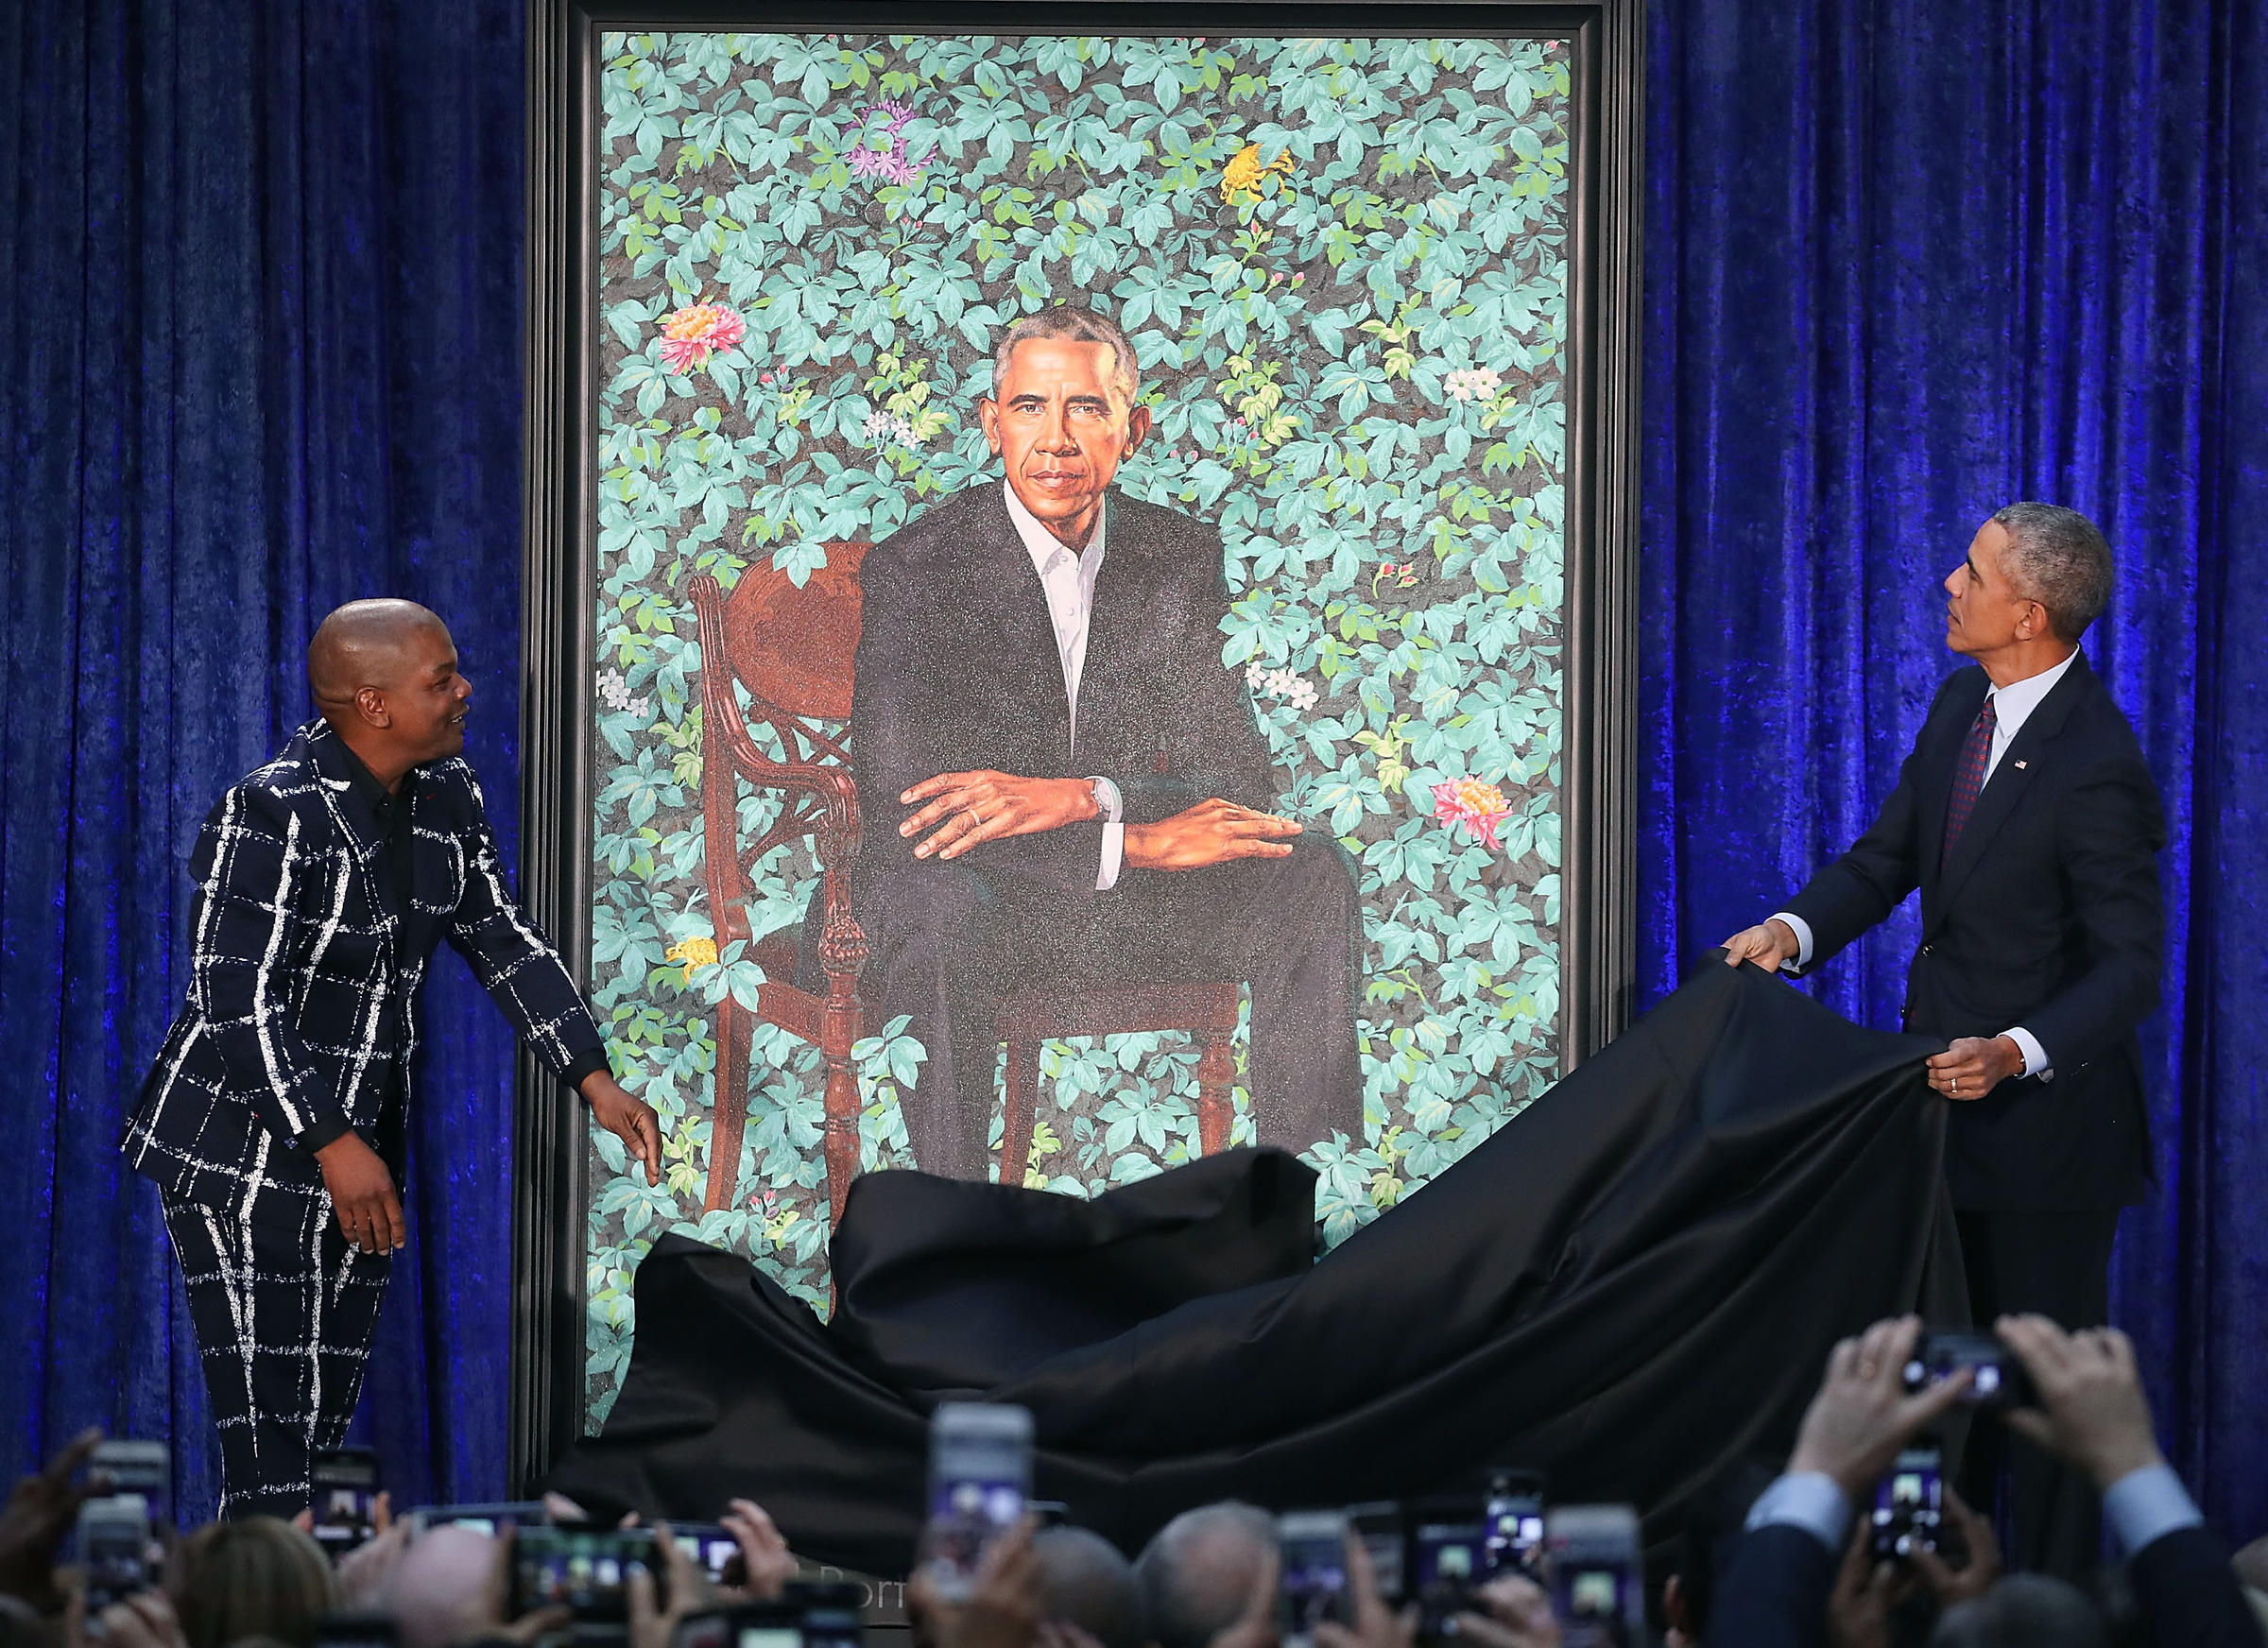 I like the Obama portraits